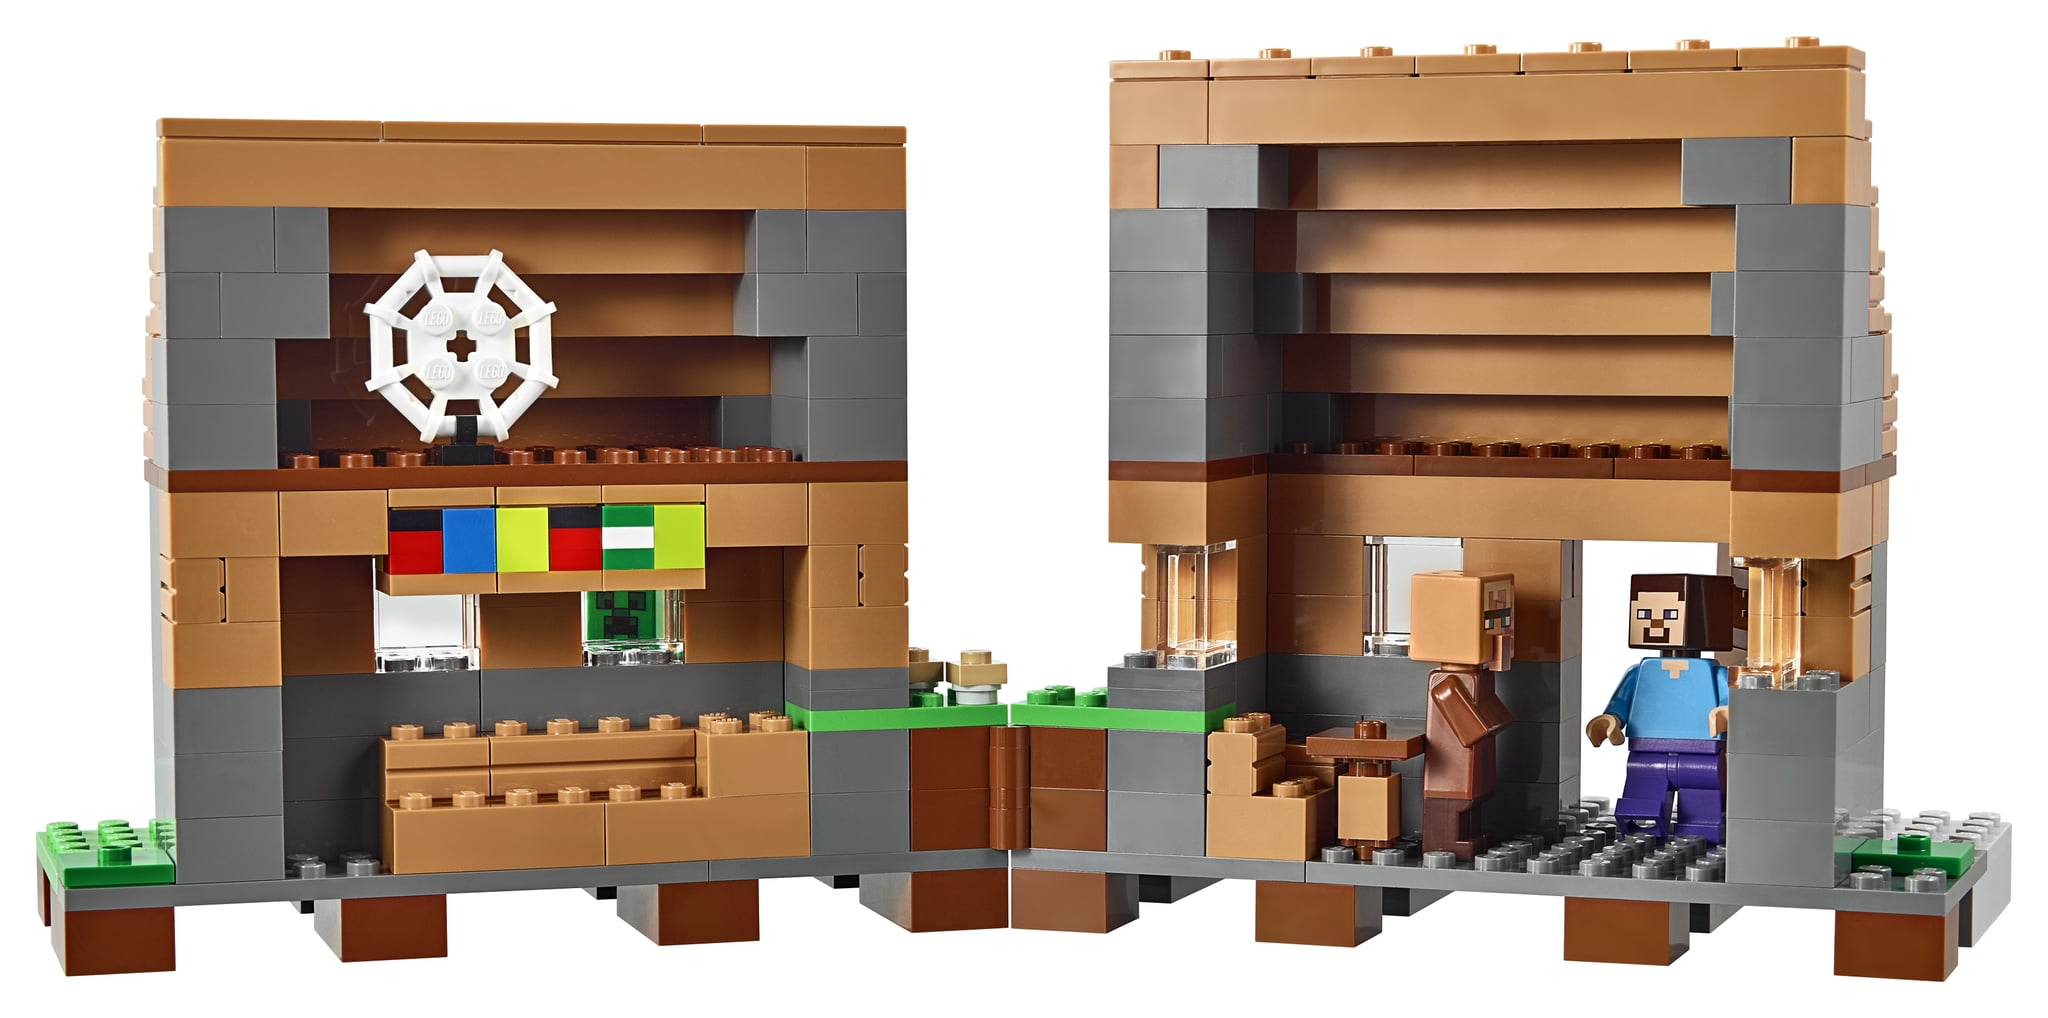 Pictures Of Lego Minecraft The Village Set Popsugar Family